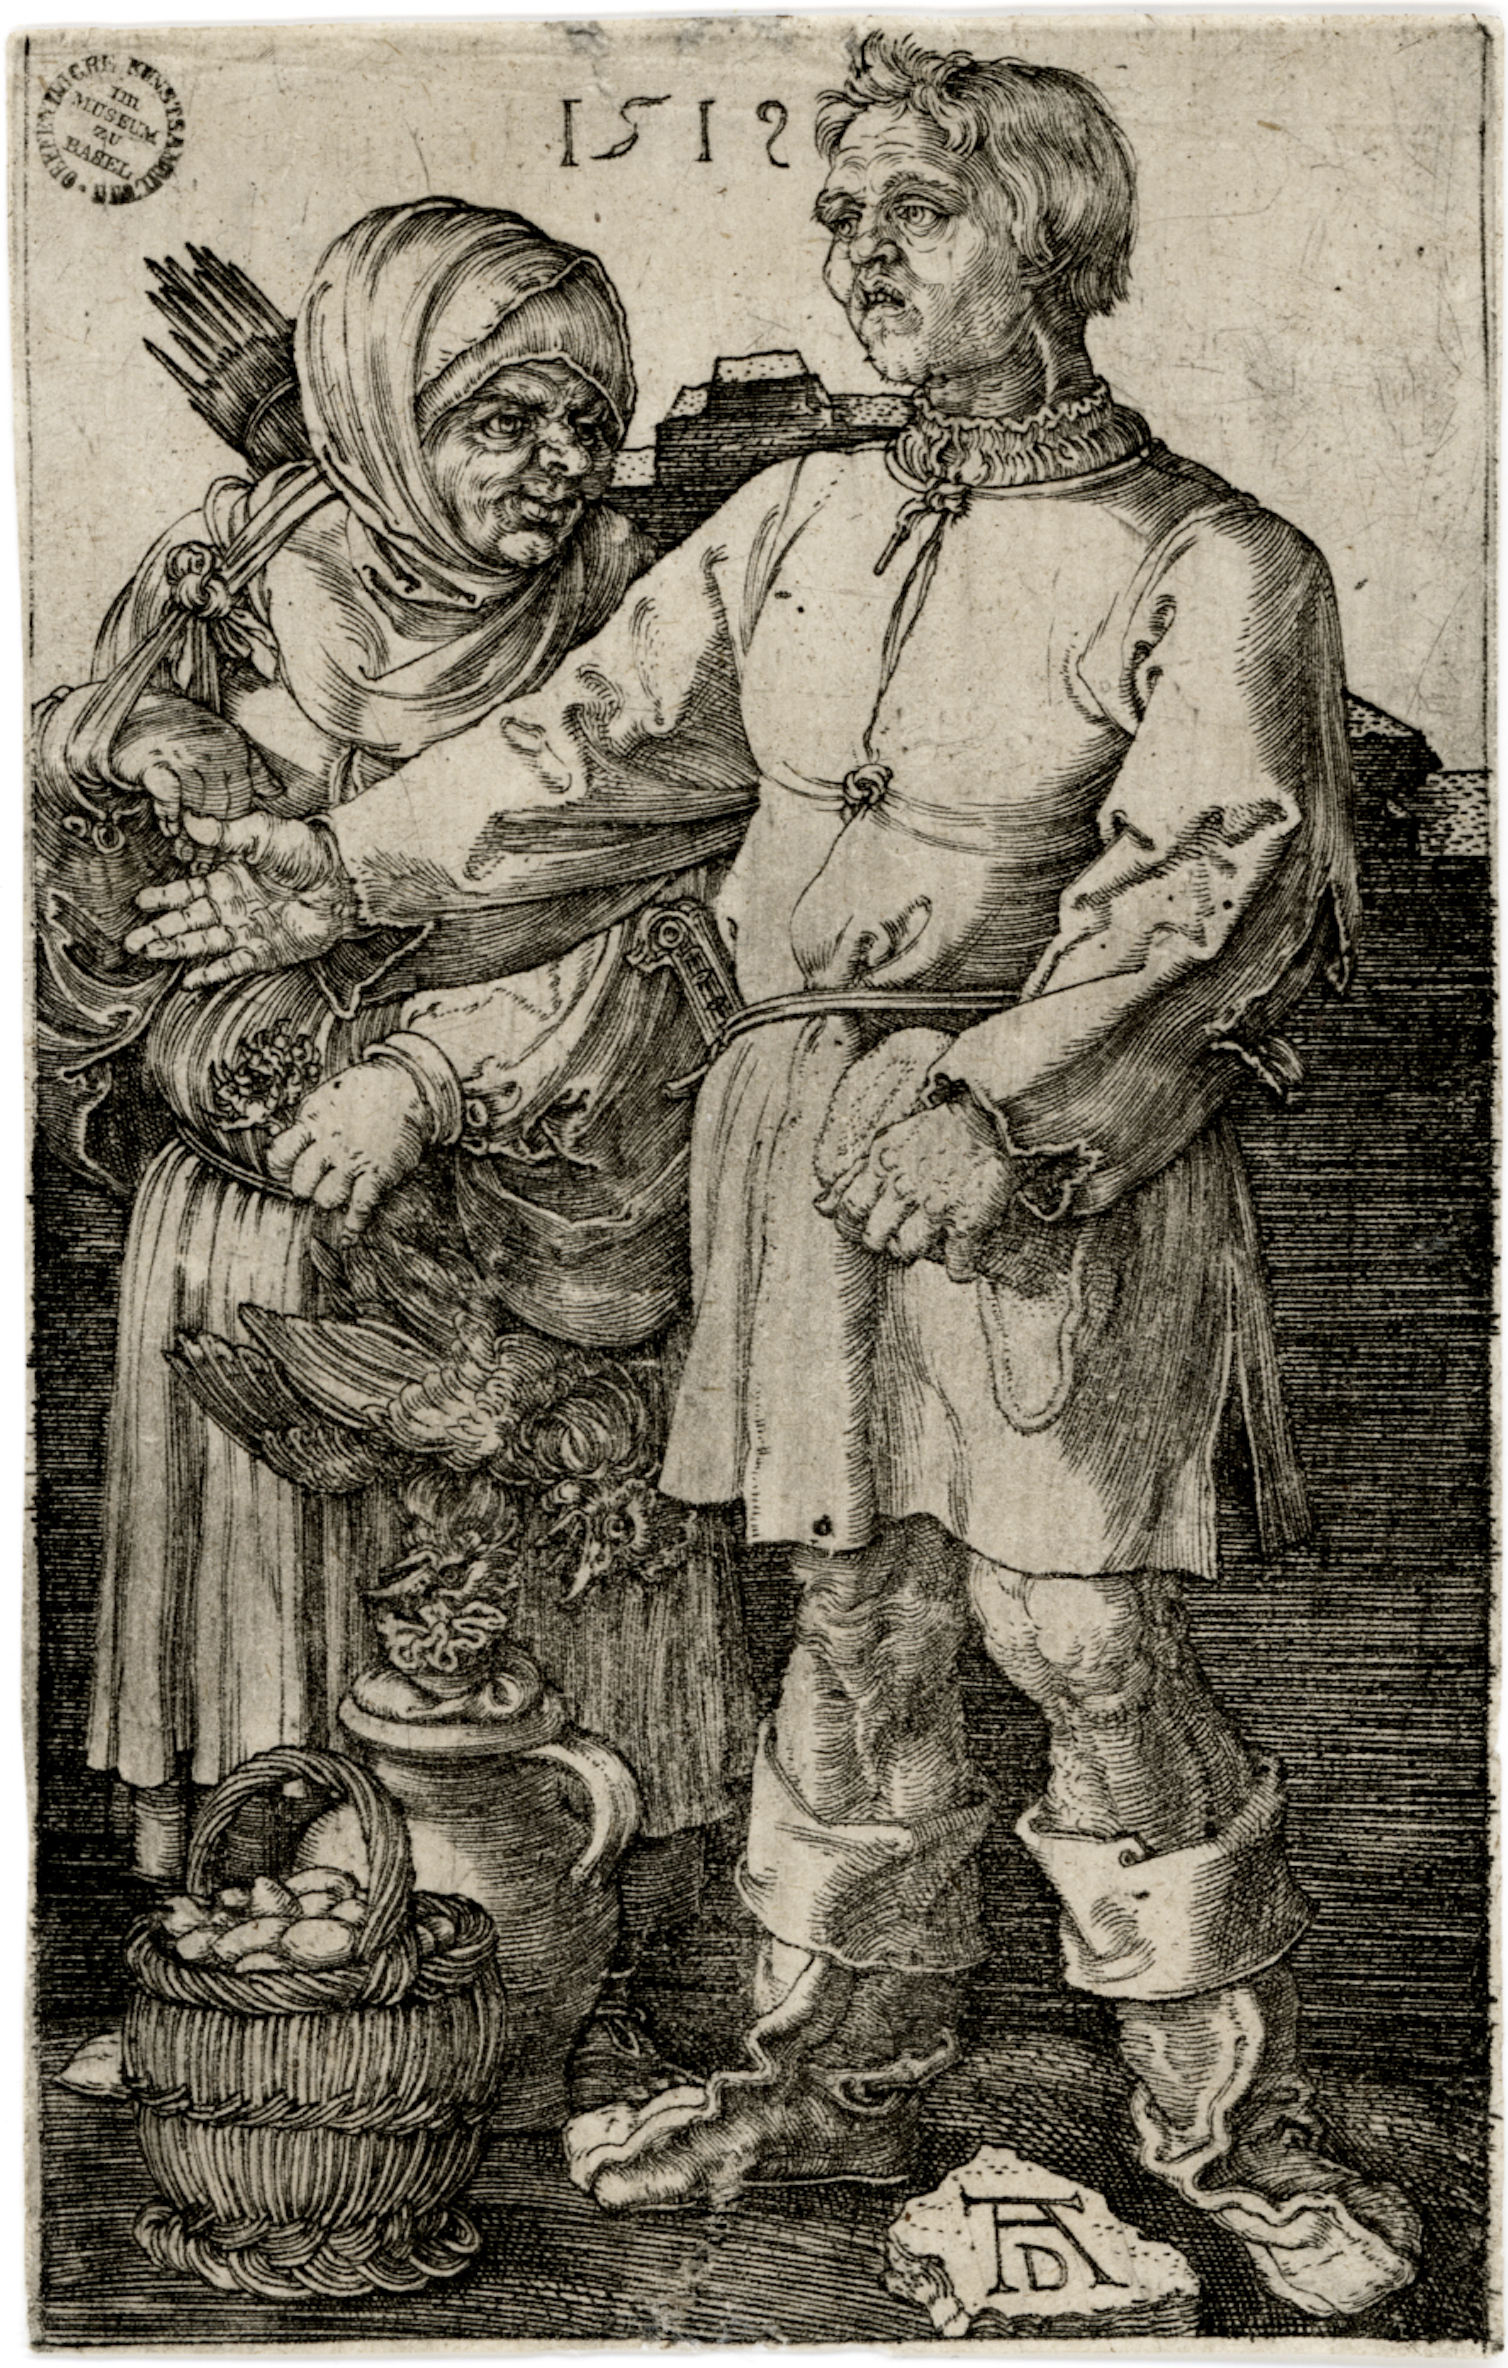 The Peasant and His Wife at Market by Albrecht Durer